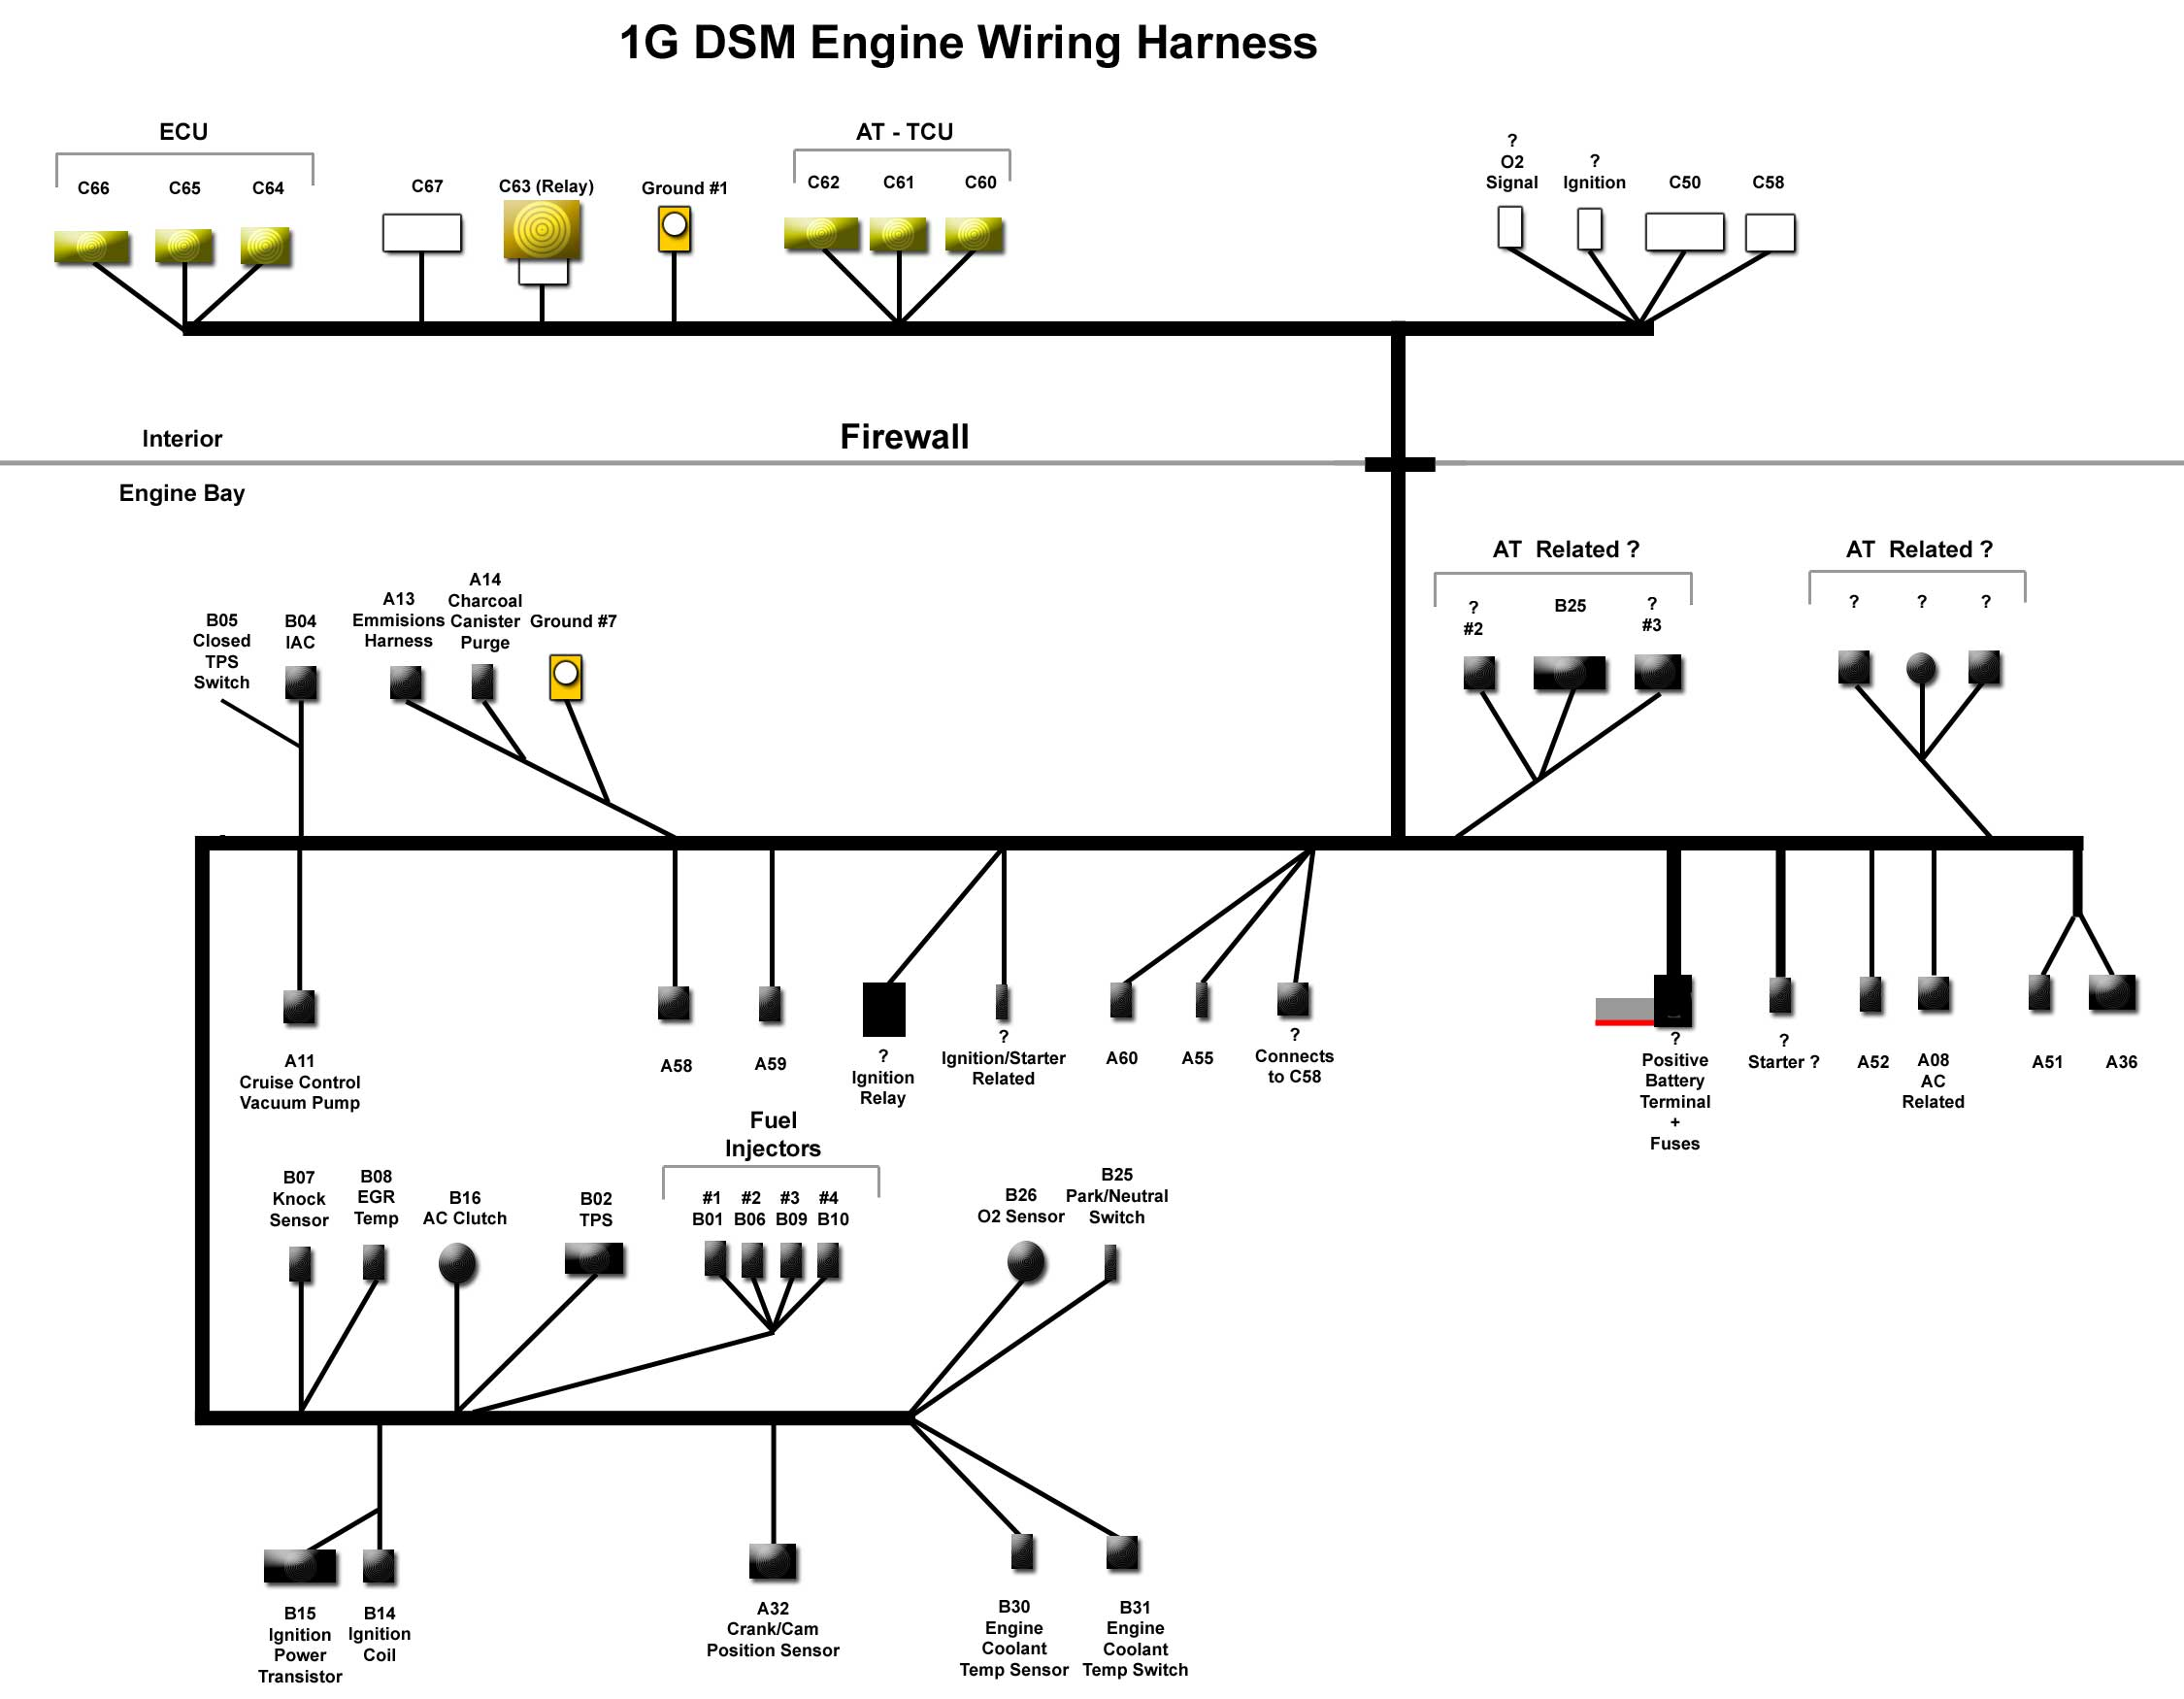 1G DSM EngineHarness 1gb dsm 4g63 turbo wiring harness diagram wiring harness diagram at cita.asia